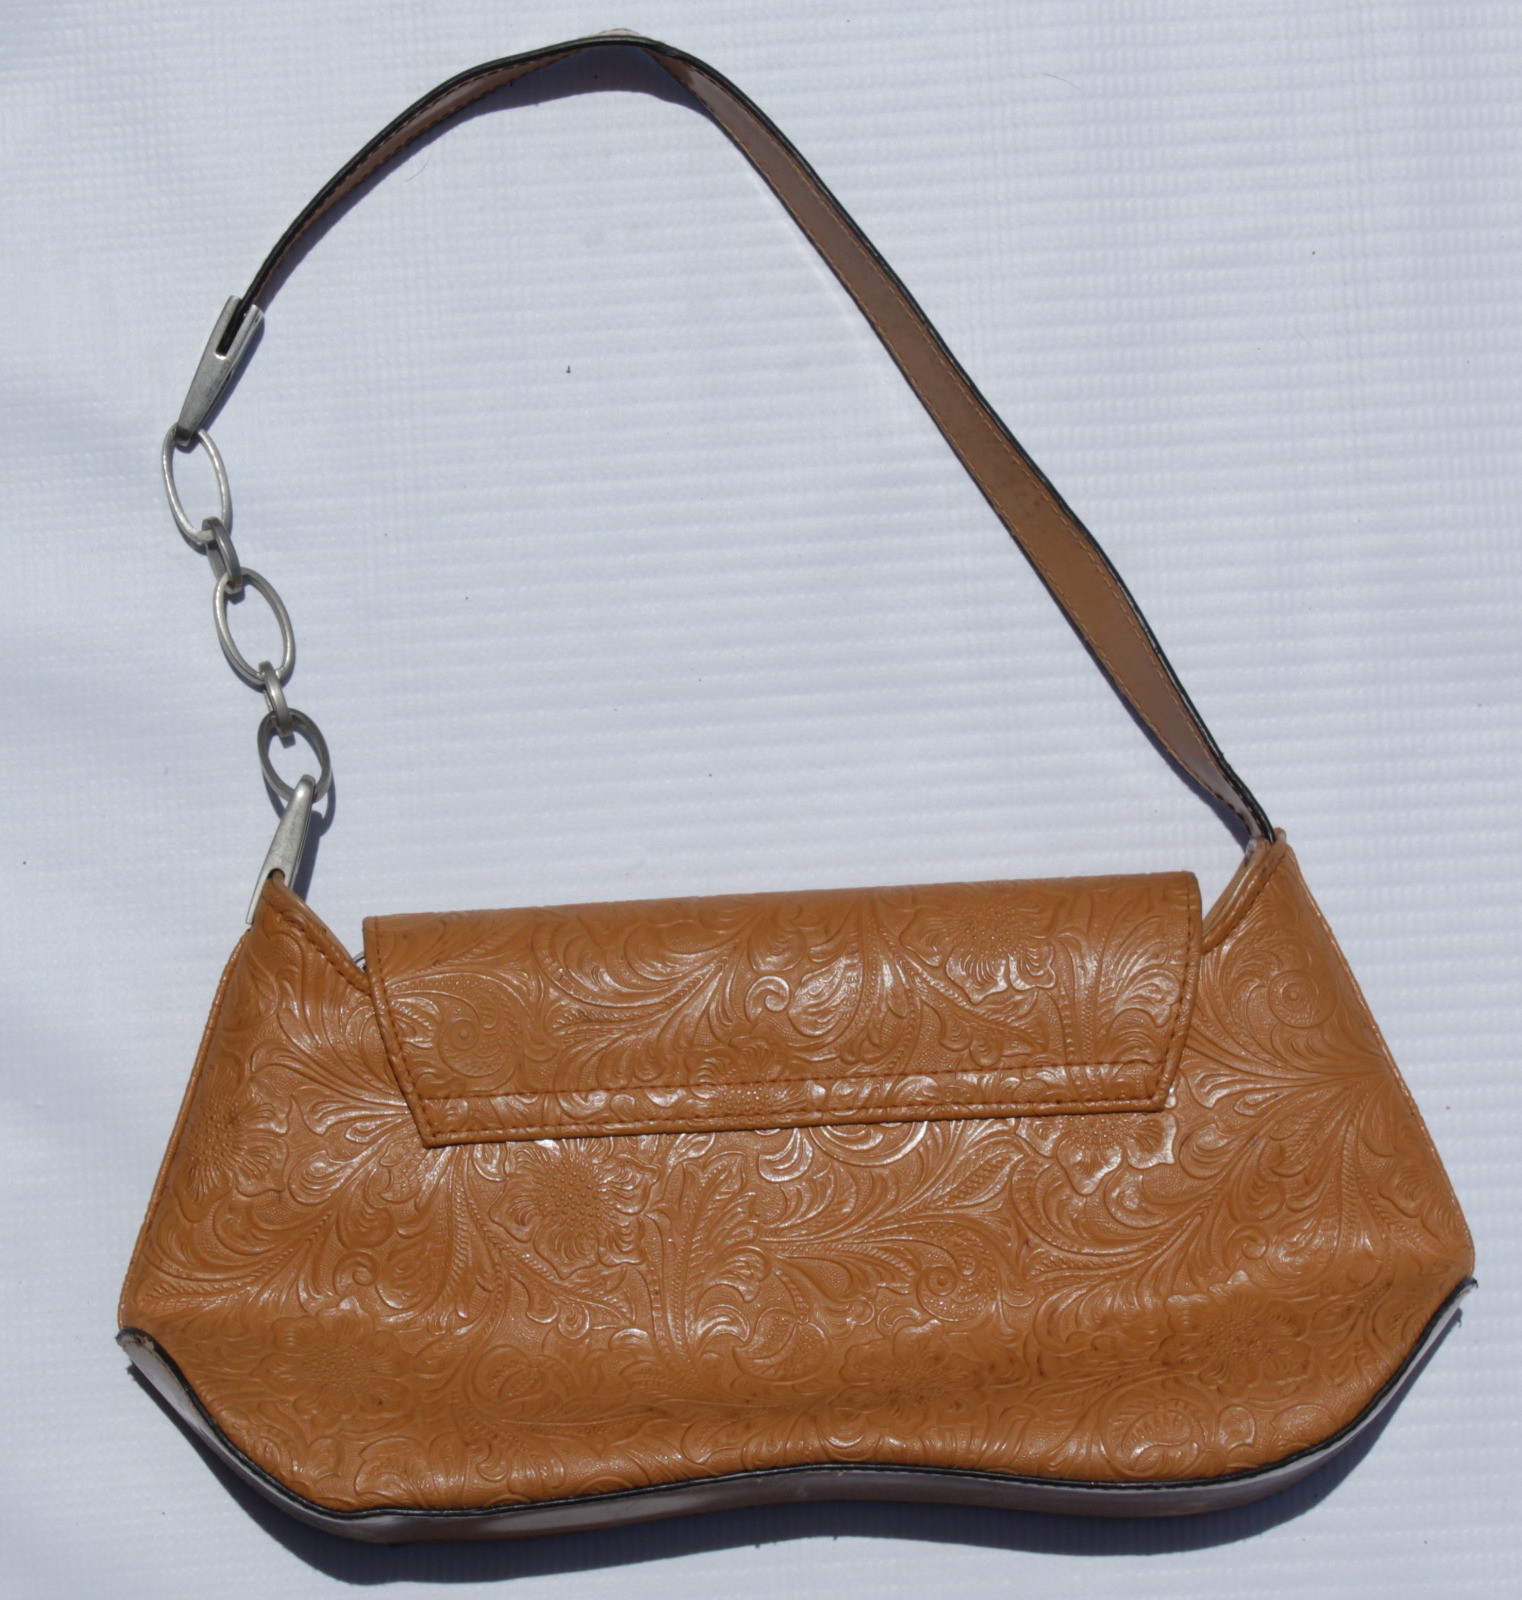 Styled Tan Leather Purse